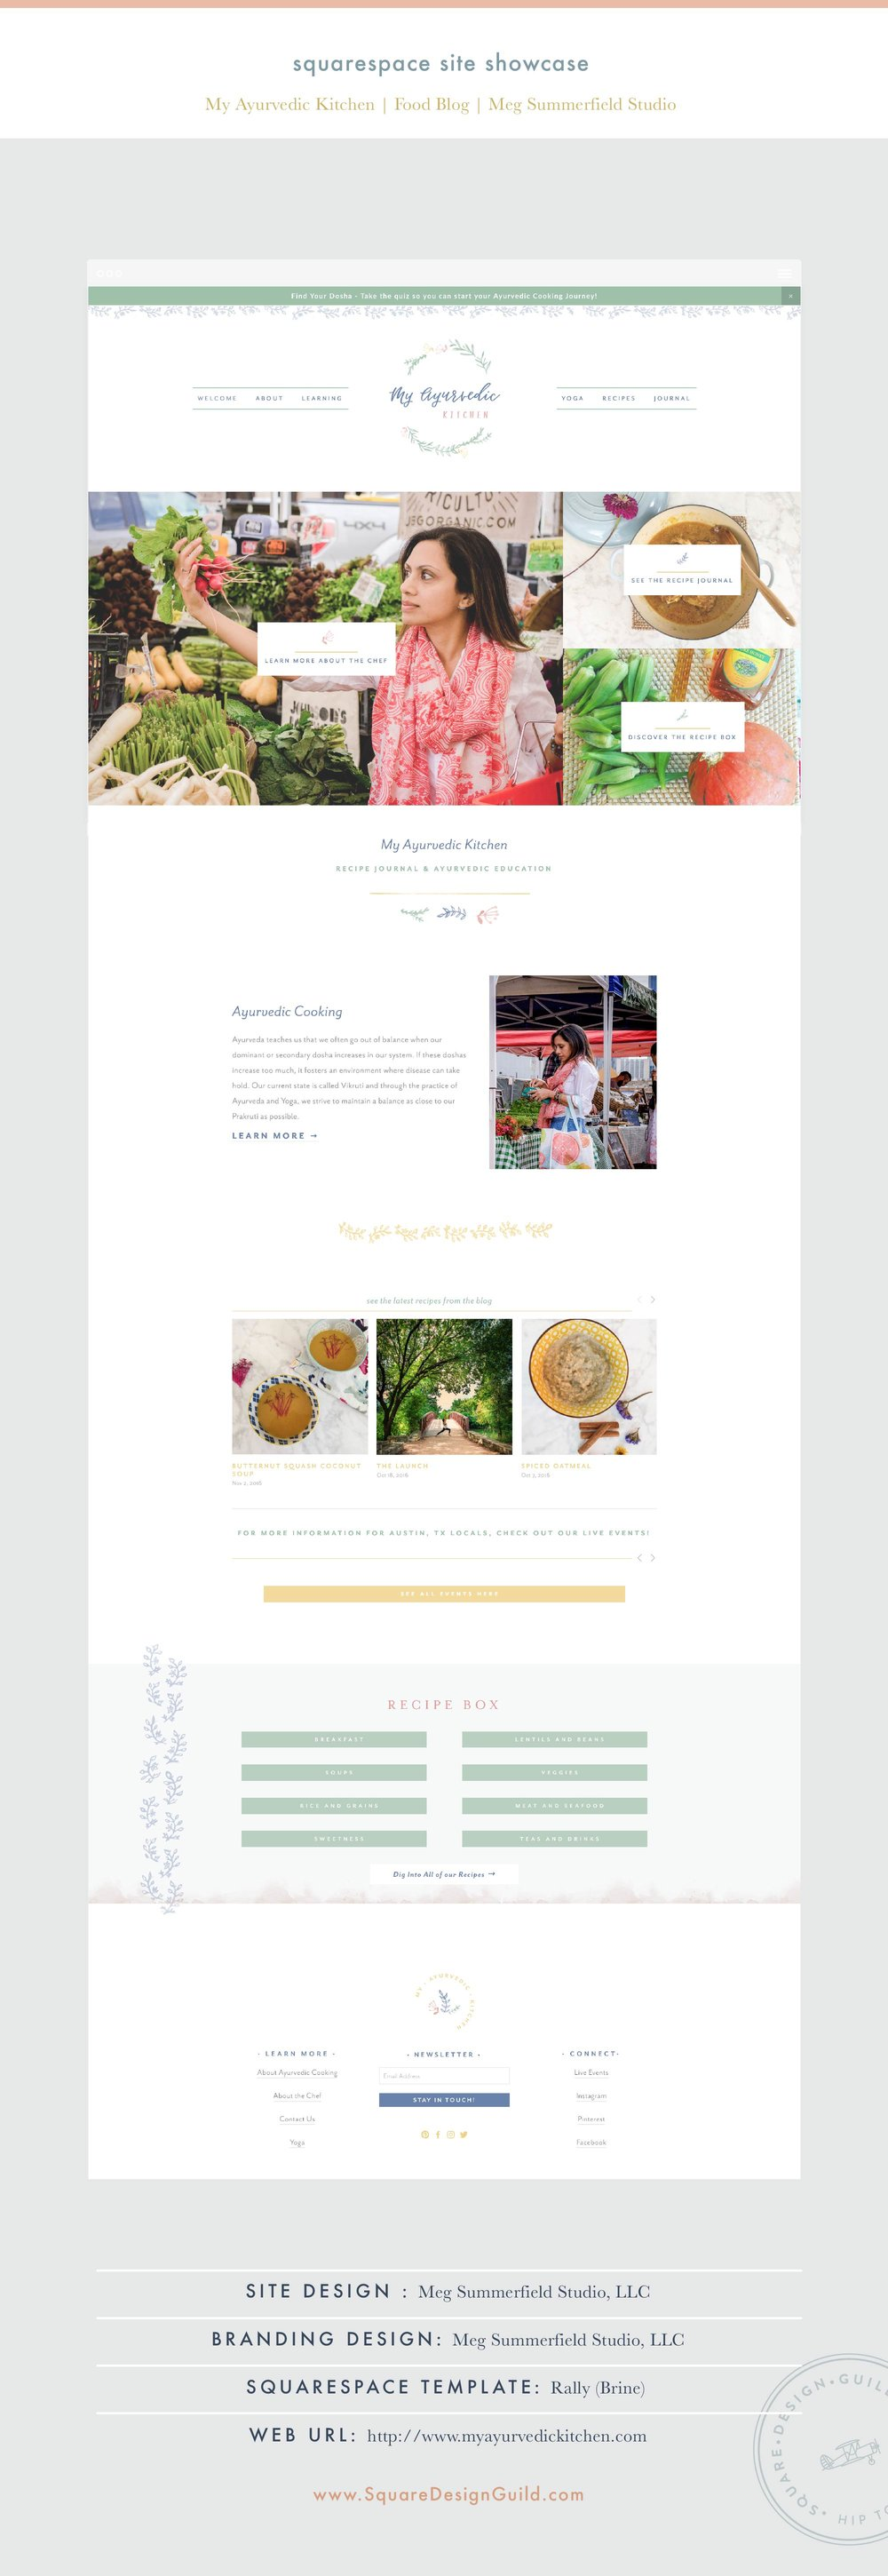 Squarespace Site Showcase | My Ayurvedic Kitchen | Brine Template